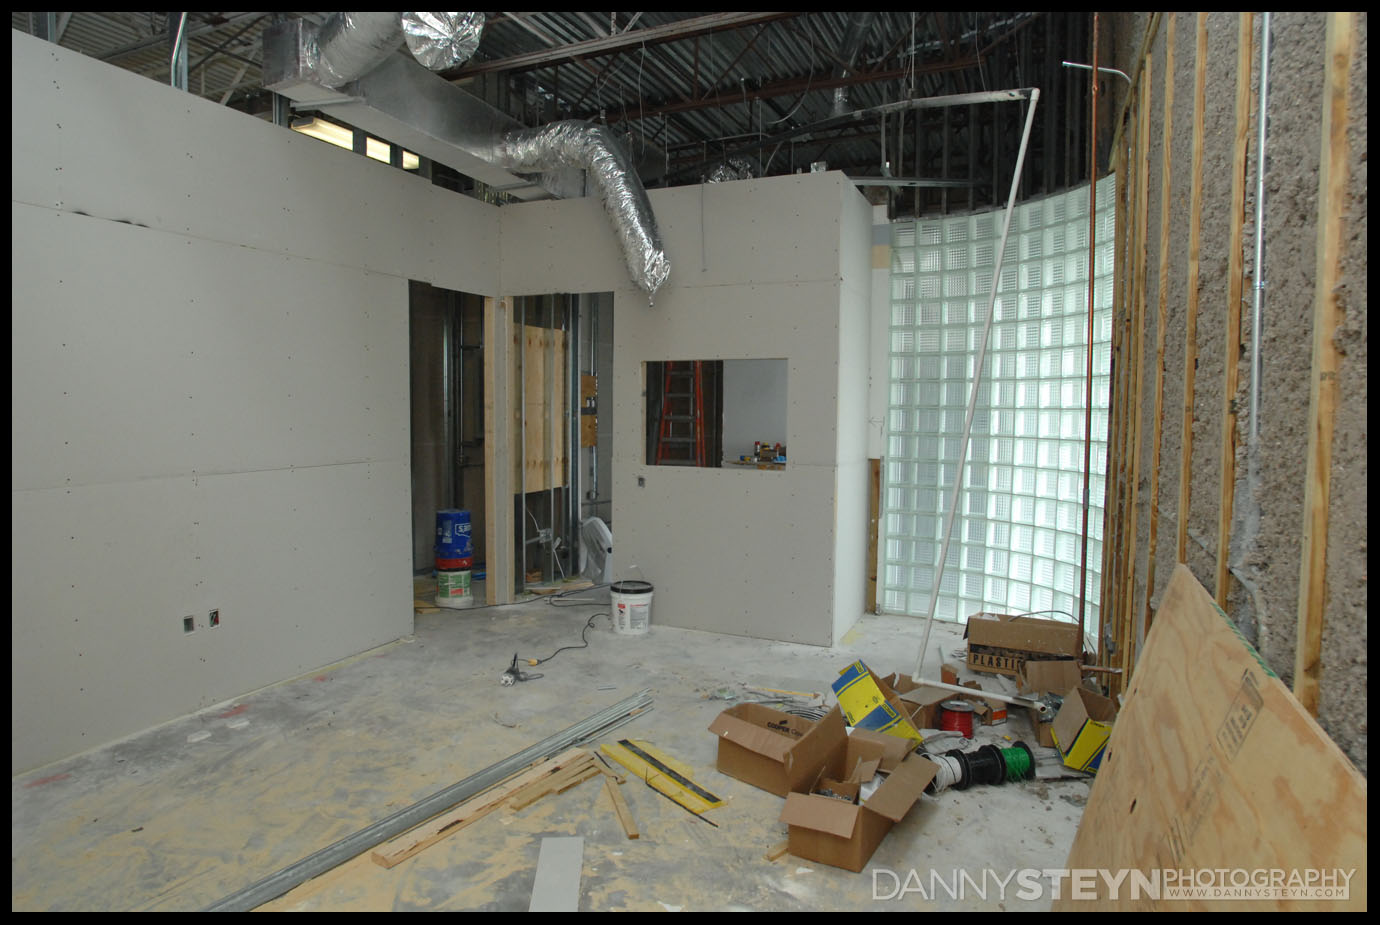 Drywall going up in the Editing Room, window and door to Lobby, door to Prop Room and Server station